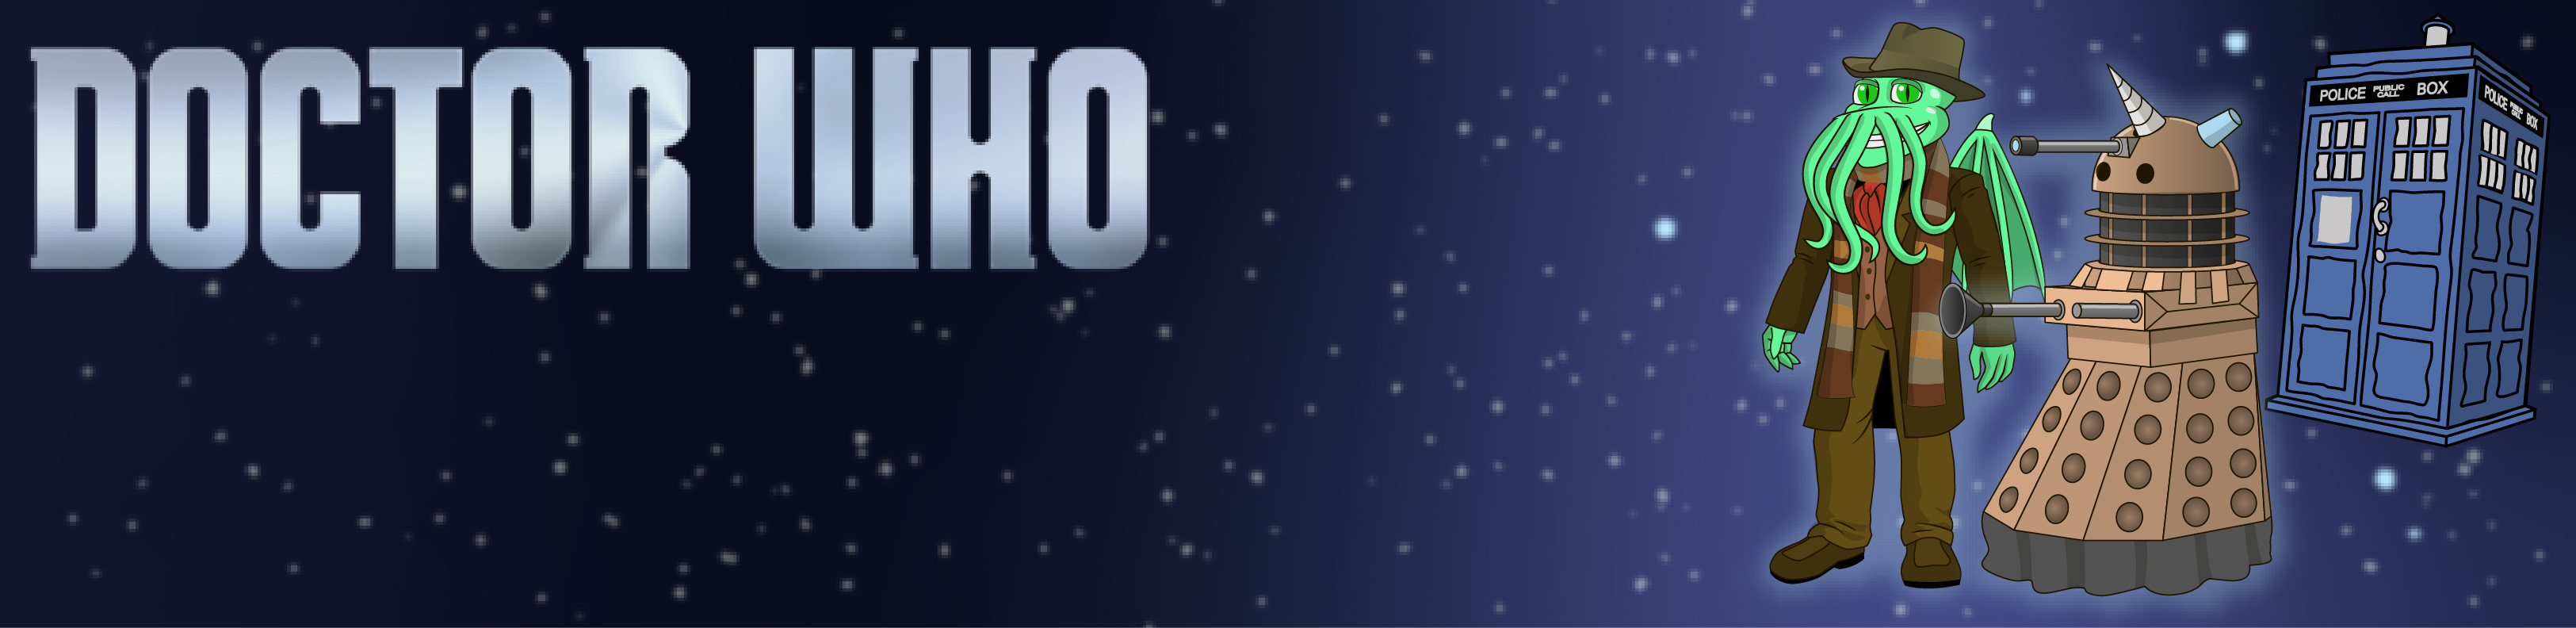 Doctor Who Fanartikel im Doctor Who Fanshop